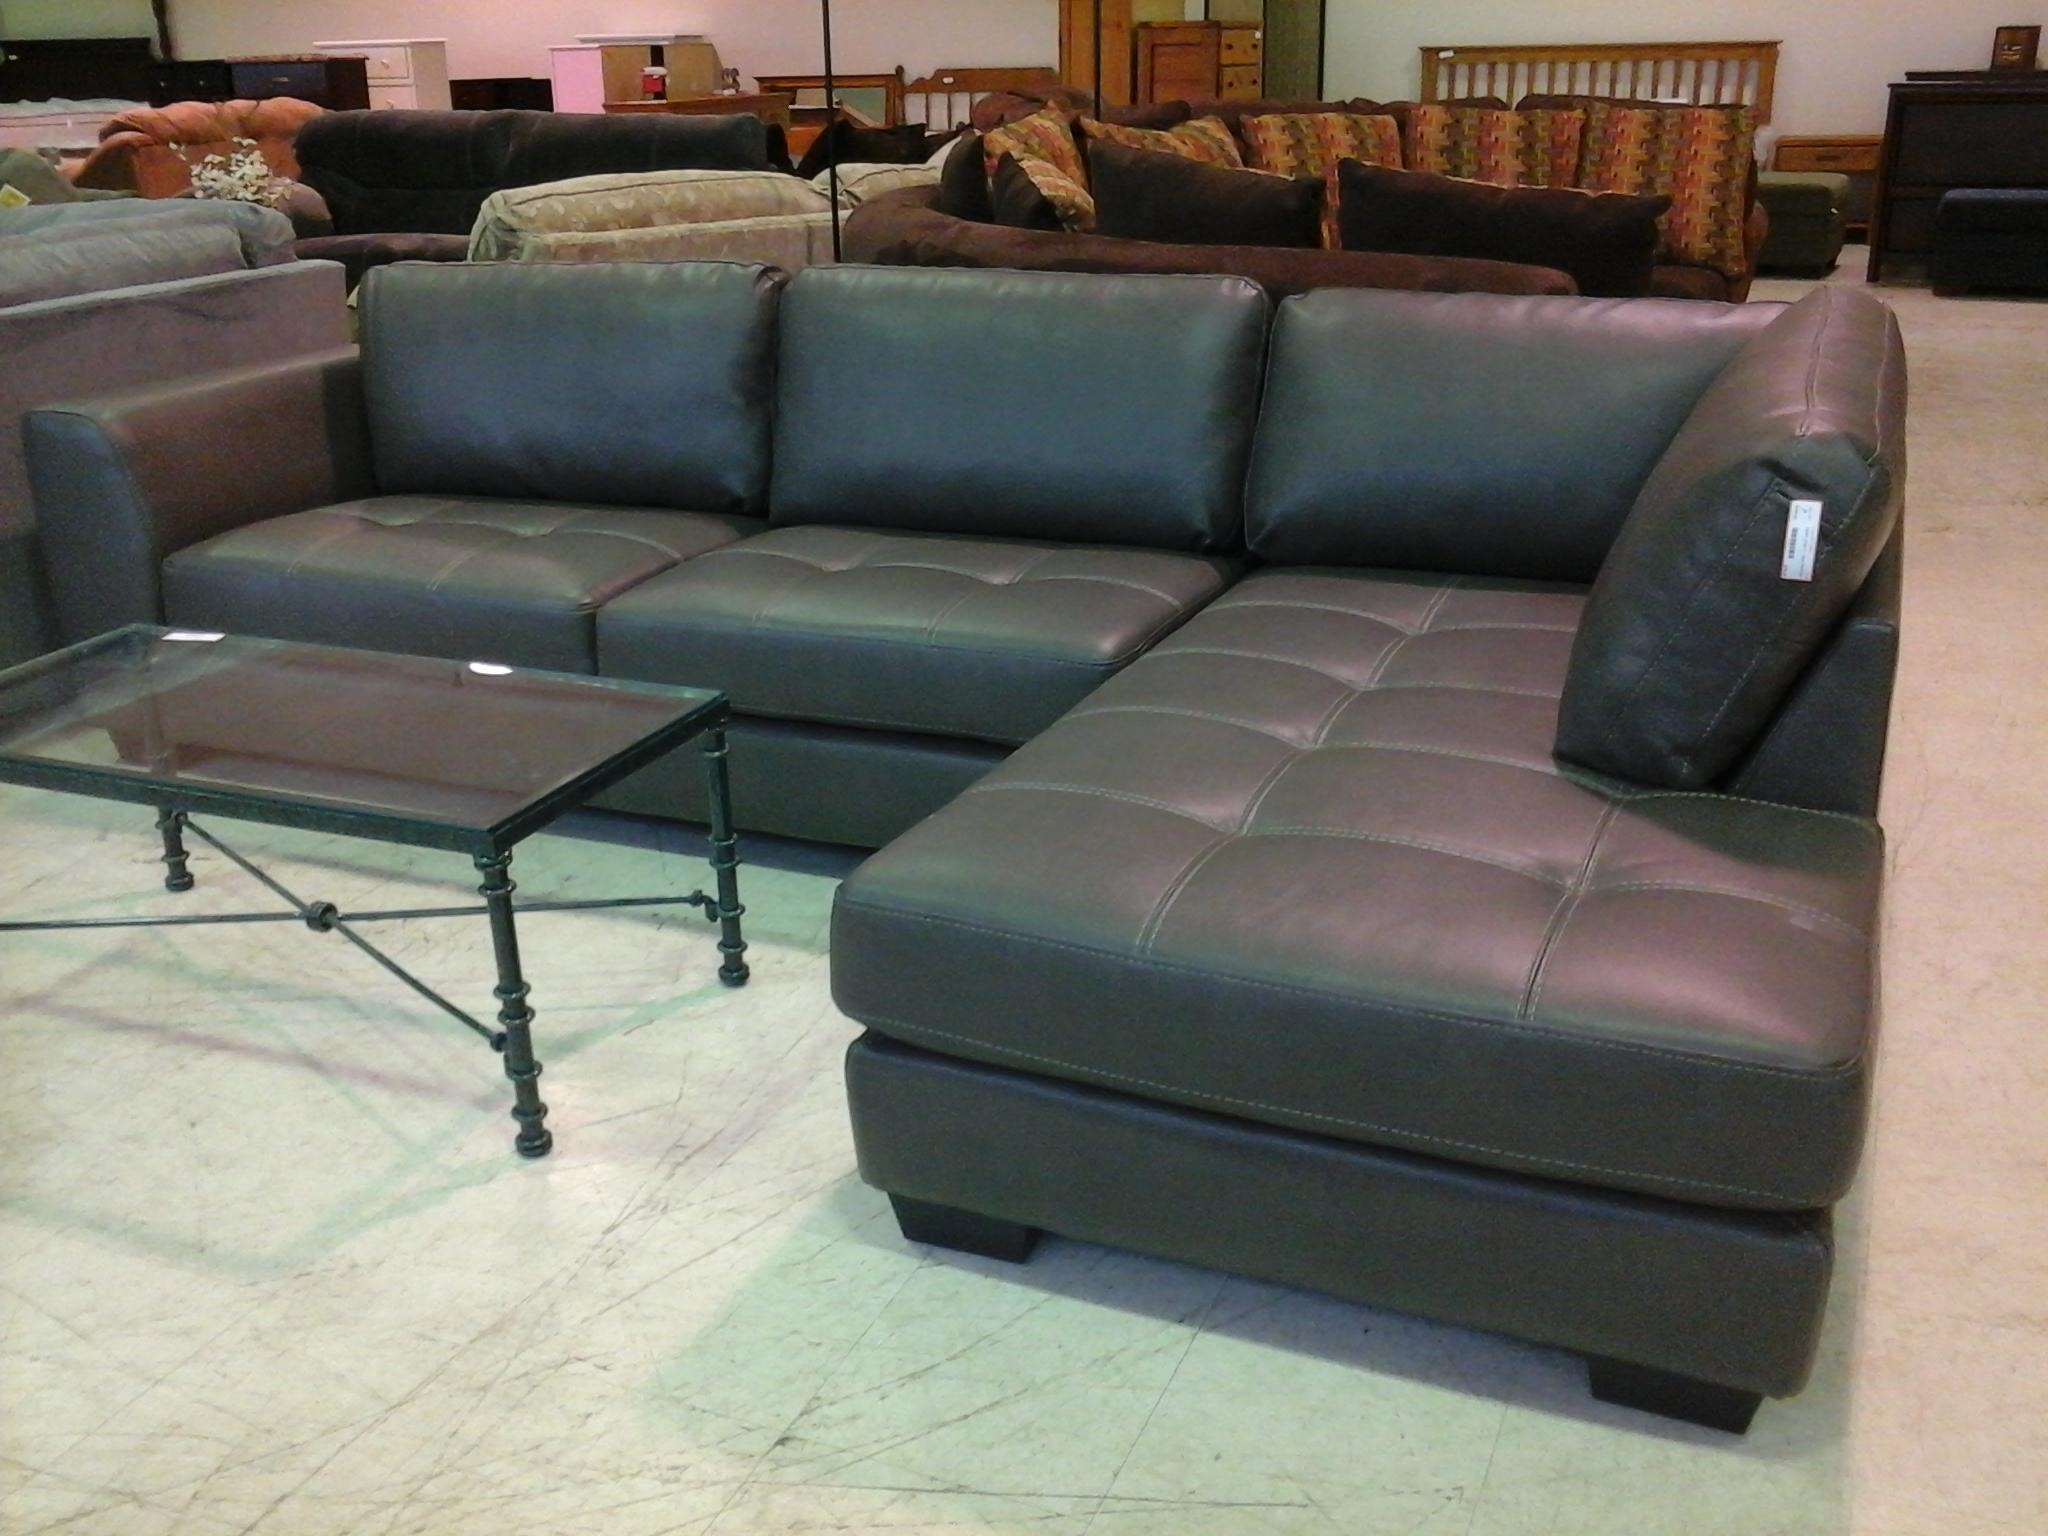 Charcoal Gray Leather Sectional Sofa | Tehranmix Decoration Inside Charcoal Gray Sectional Sofas (View 11 of 20)